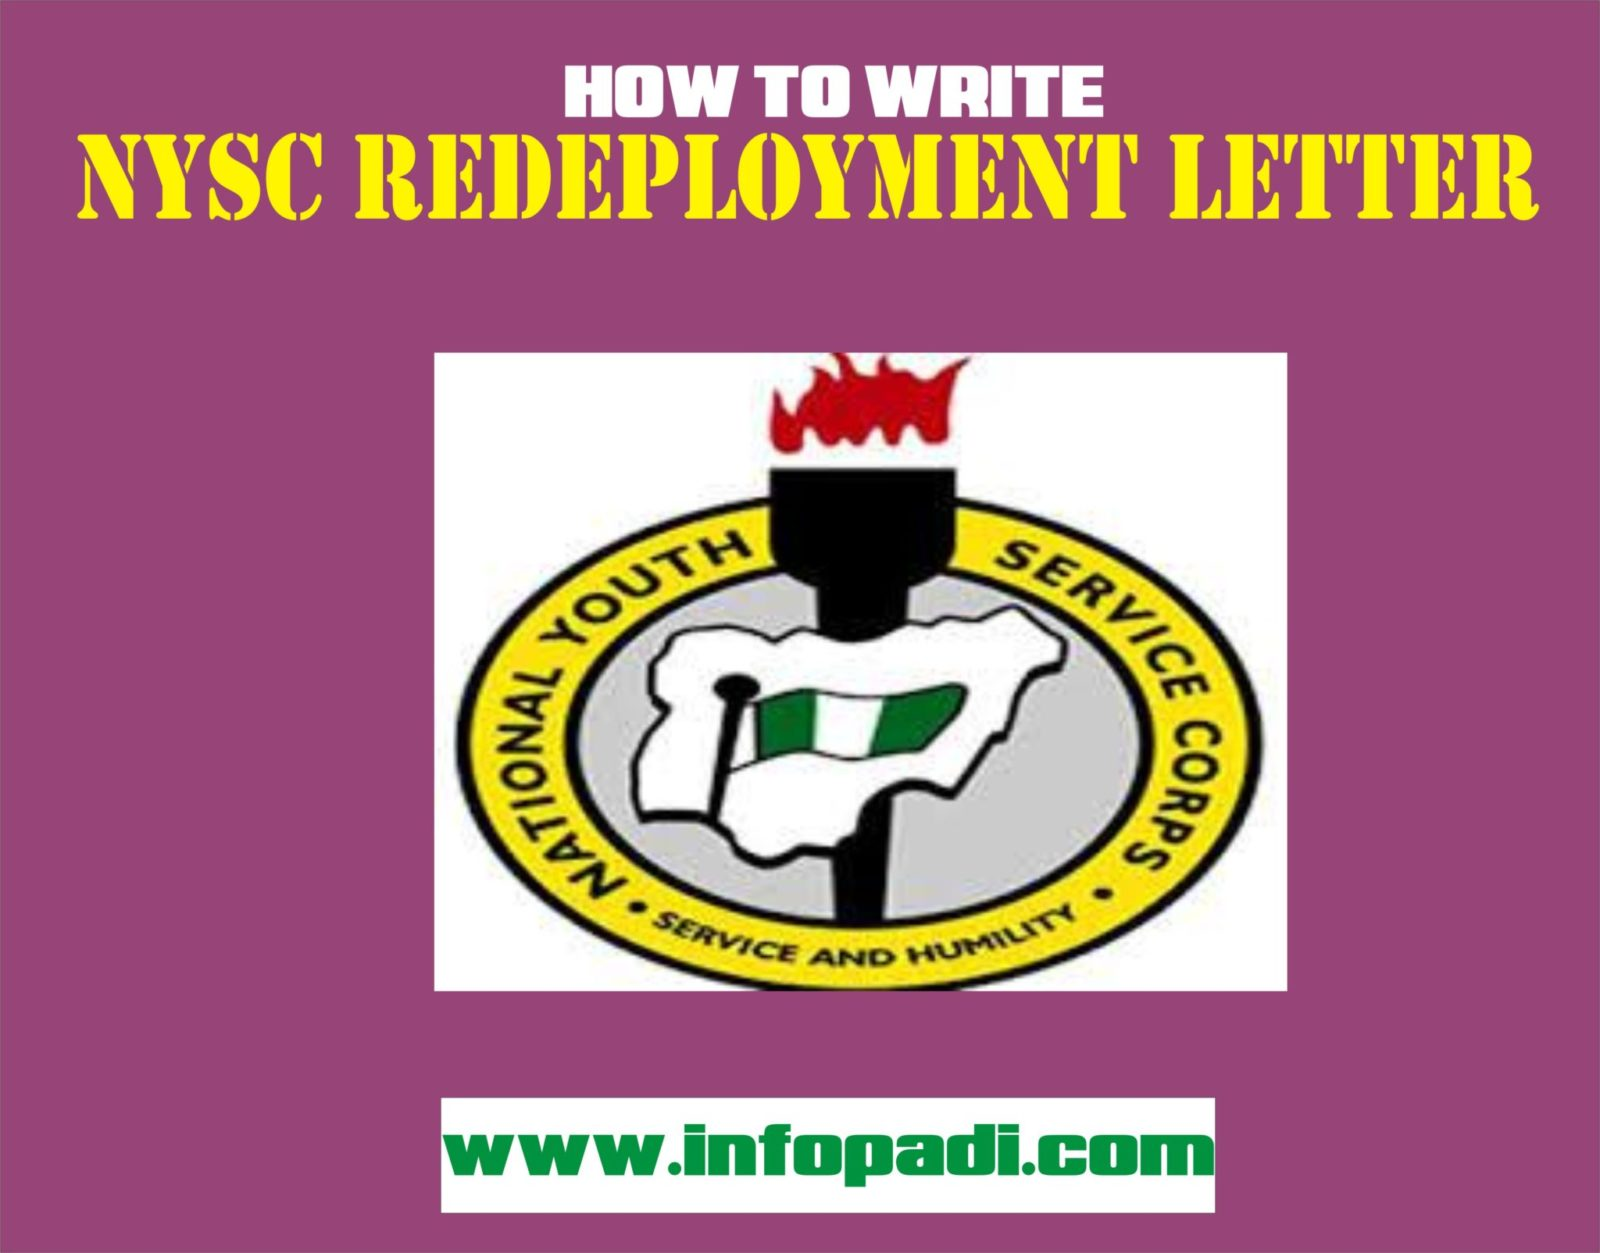 NYSC Redeployment Letter Format 2020- The easiest way to get your redeployment request approved